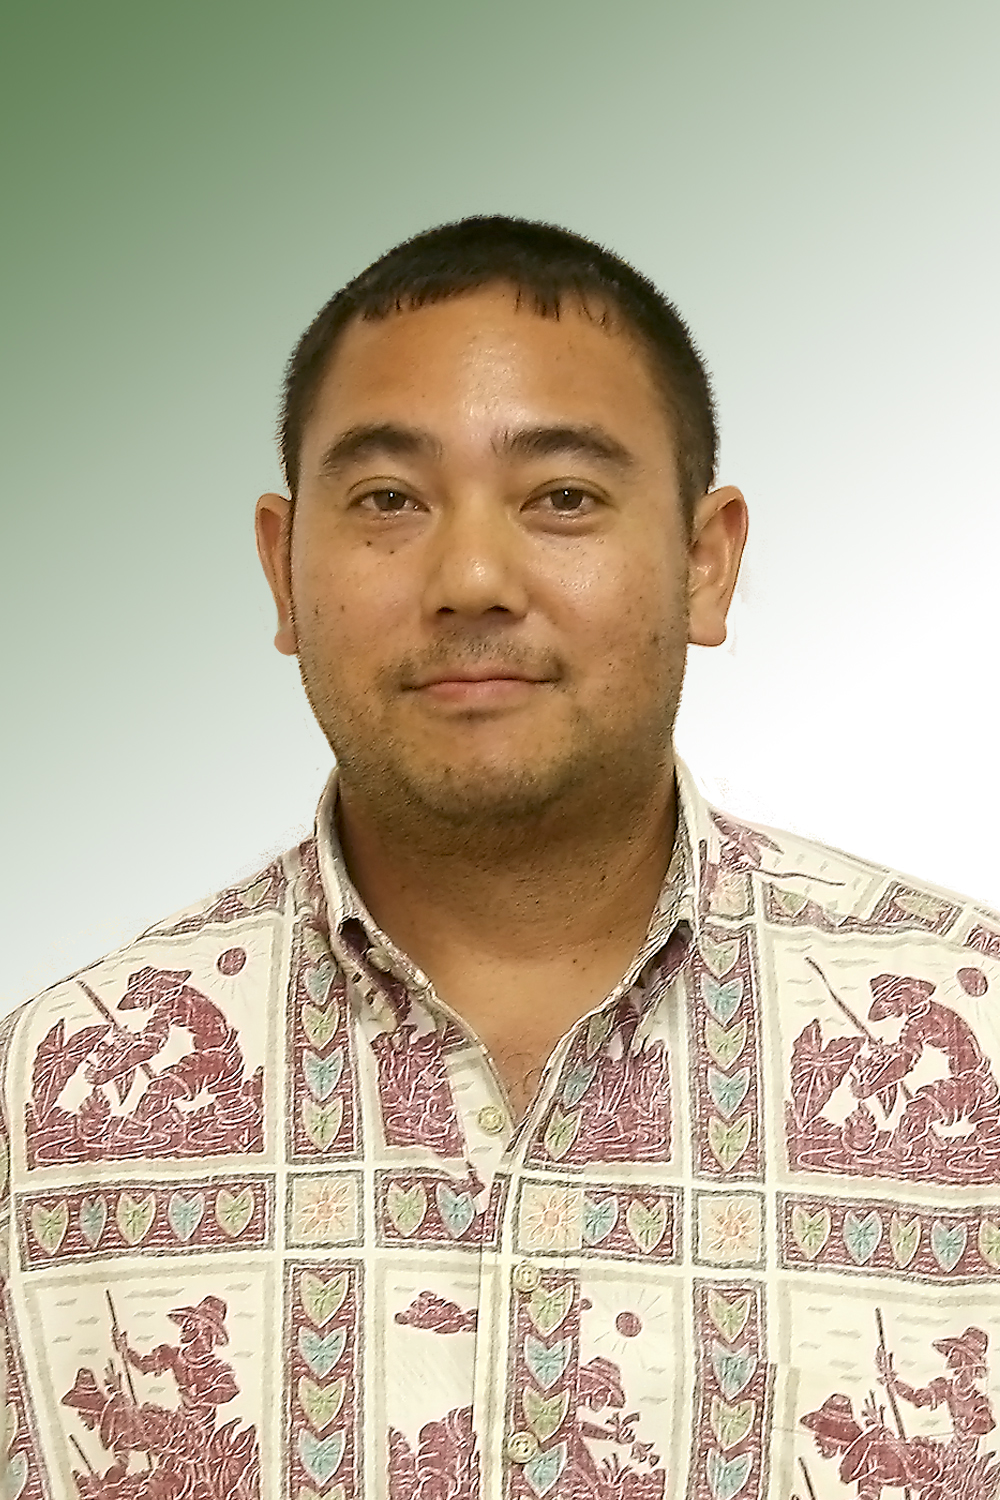 Professional Registration  1994  Electrical Engineering, Hawaii (8374) 1996Electrical Engineering, Washington (15315) 2007  Electrical Engineering, Guam (1334)   Professional Experience  Jay Hashimoto has 18 years of experience with InSynergy Engineering, Inc. In addition, he has eight years of experience with other electrical engineering consulting firms here in Honolulu and California. Jay's experience includes the design of electrical systems for commercial, industrial, residential, institutional, and mechanical facilities for both private and public sector projects which included medium voltage power, lighting, telephone and data systems. In addition he has conducted power system studies which include site review, masterplanning, code compliance and future expansions for facilities.